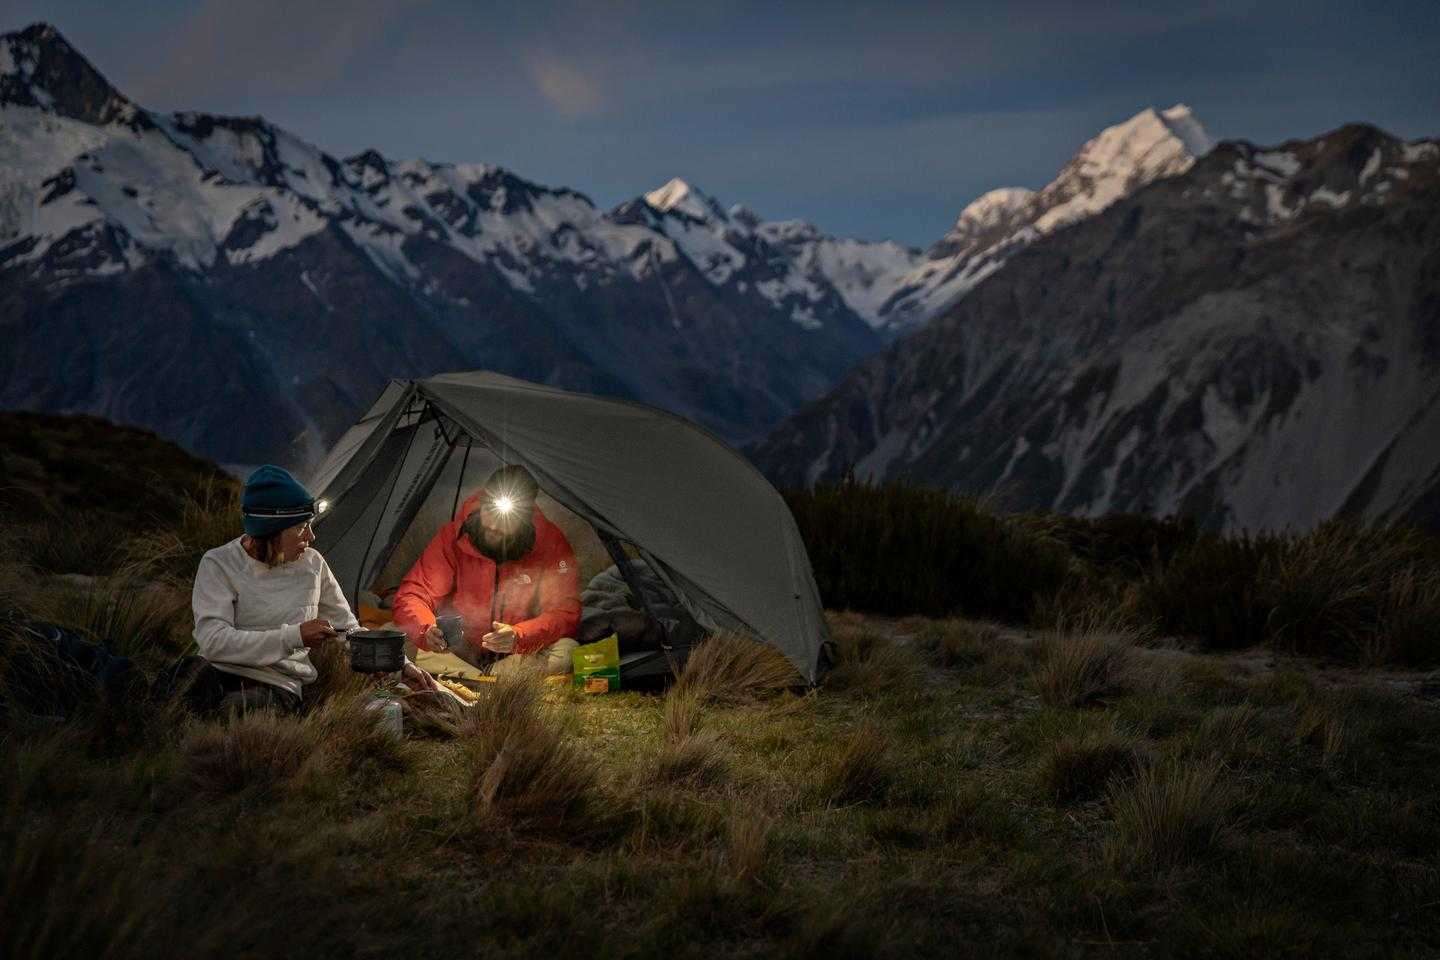 Sea to Summit already offers a large variety of light, collapsible backpacking gear, and now it tries its hand at tents